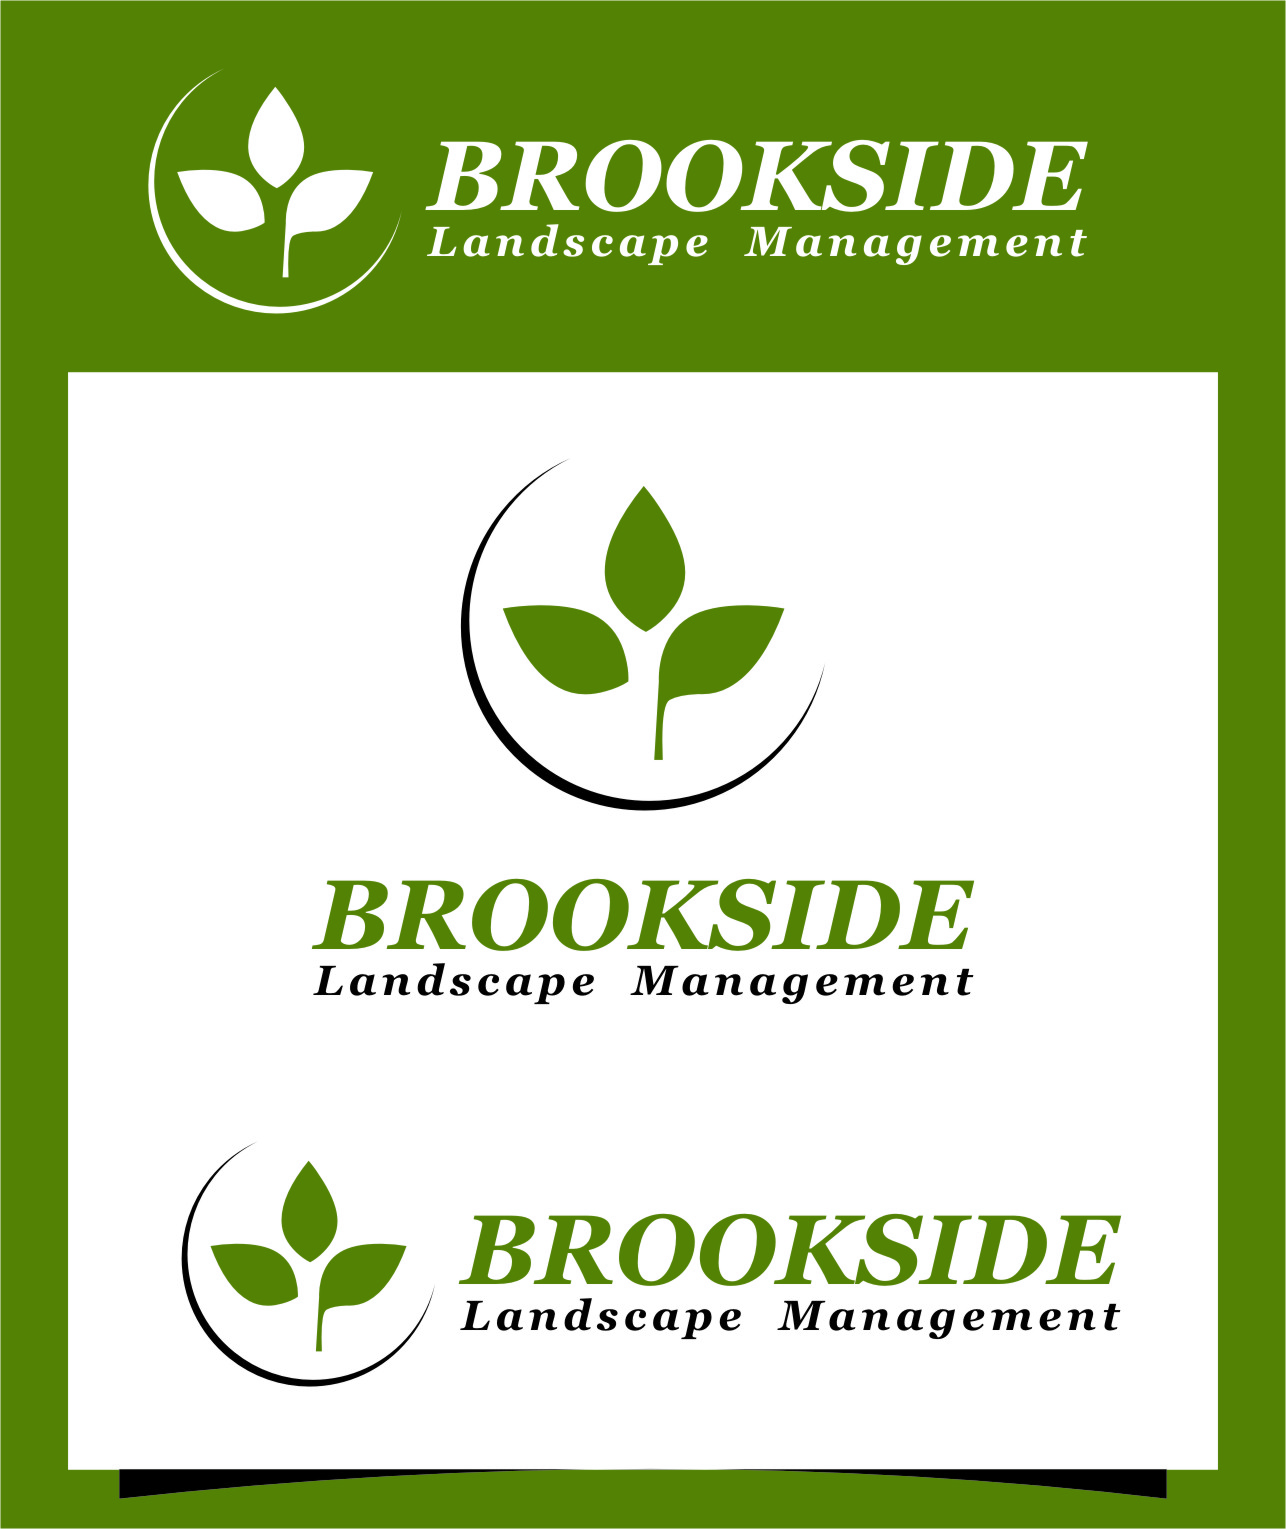 Logo Design by Ngepet_art - Entry No. 187 in the Logo Design Contest New Logo Design for Brookside Landscape Management.